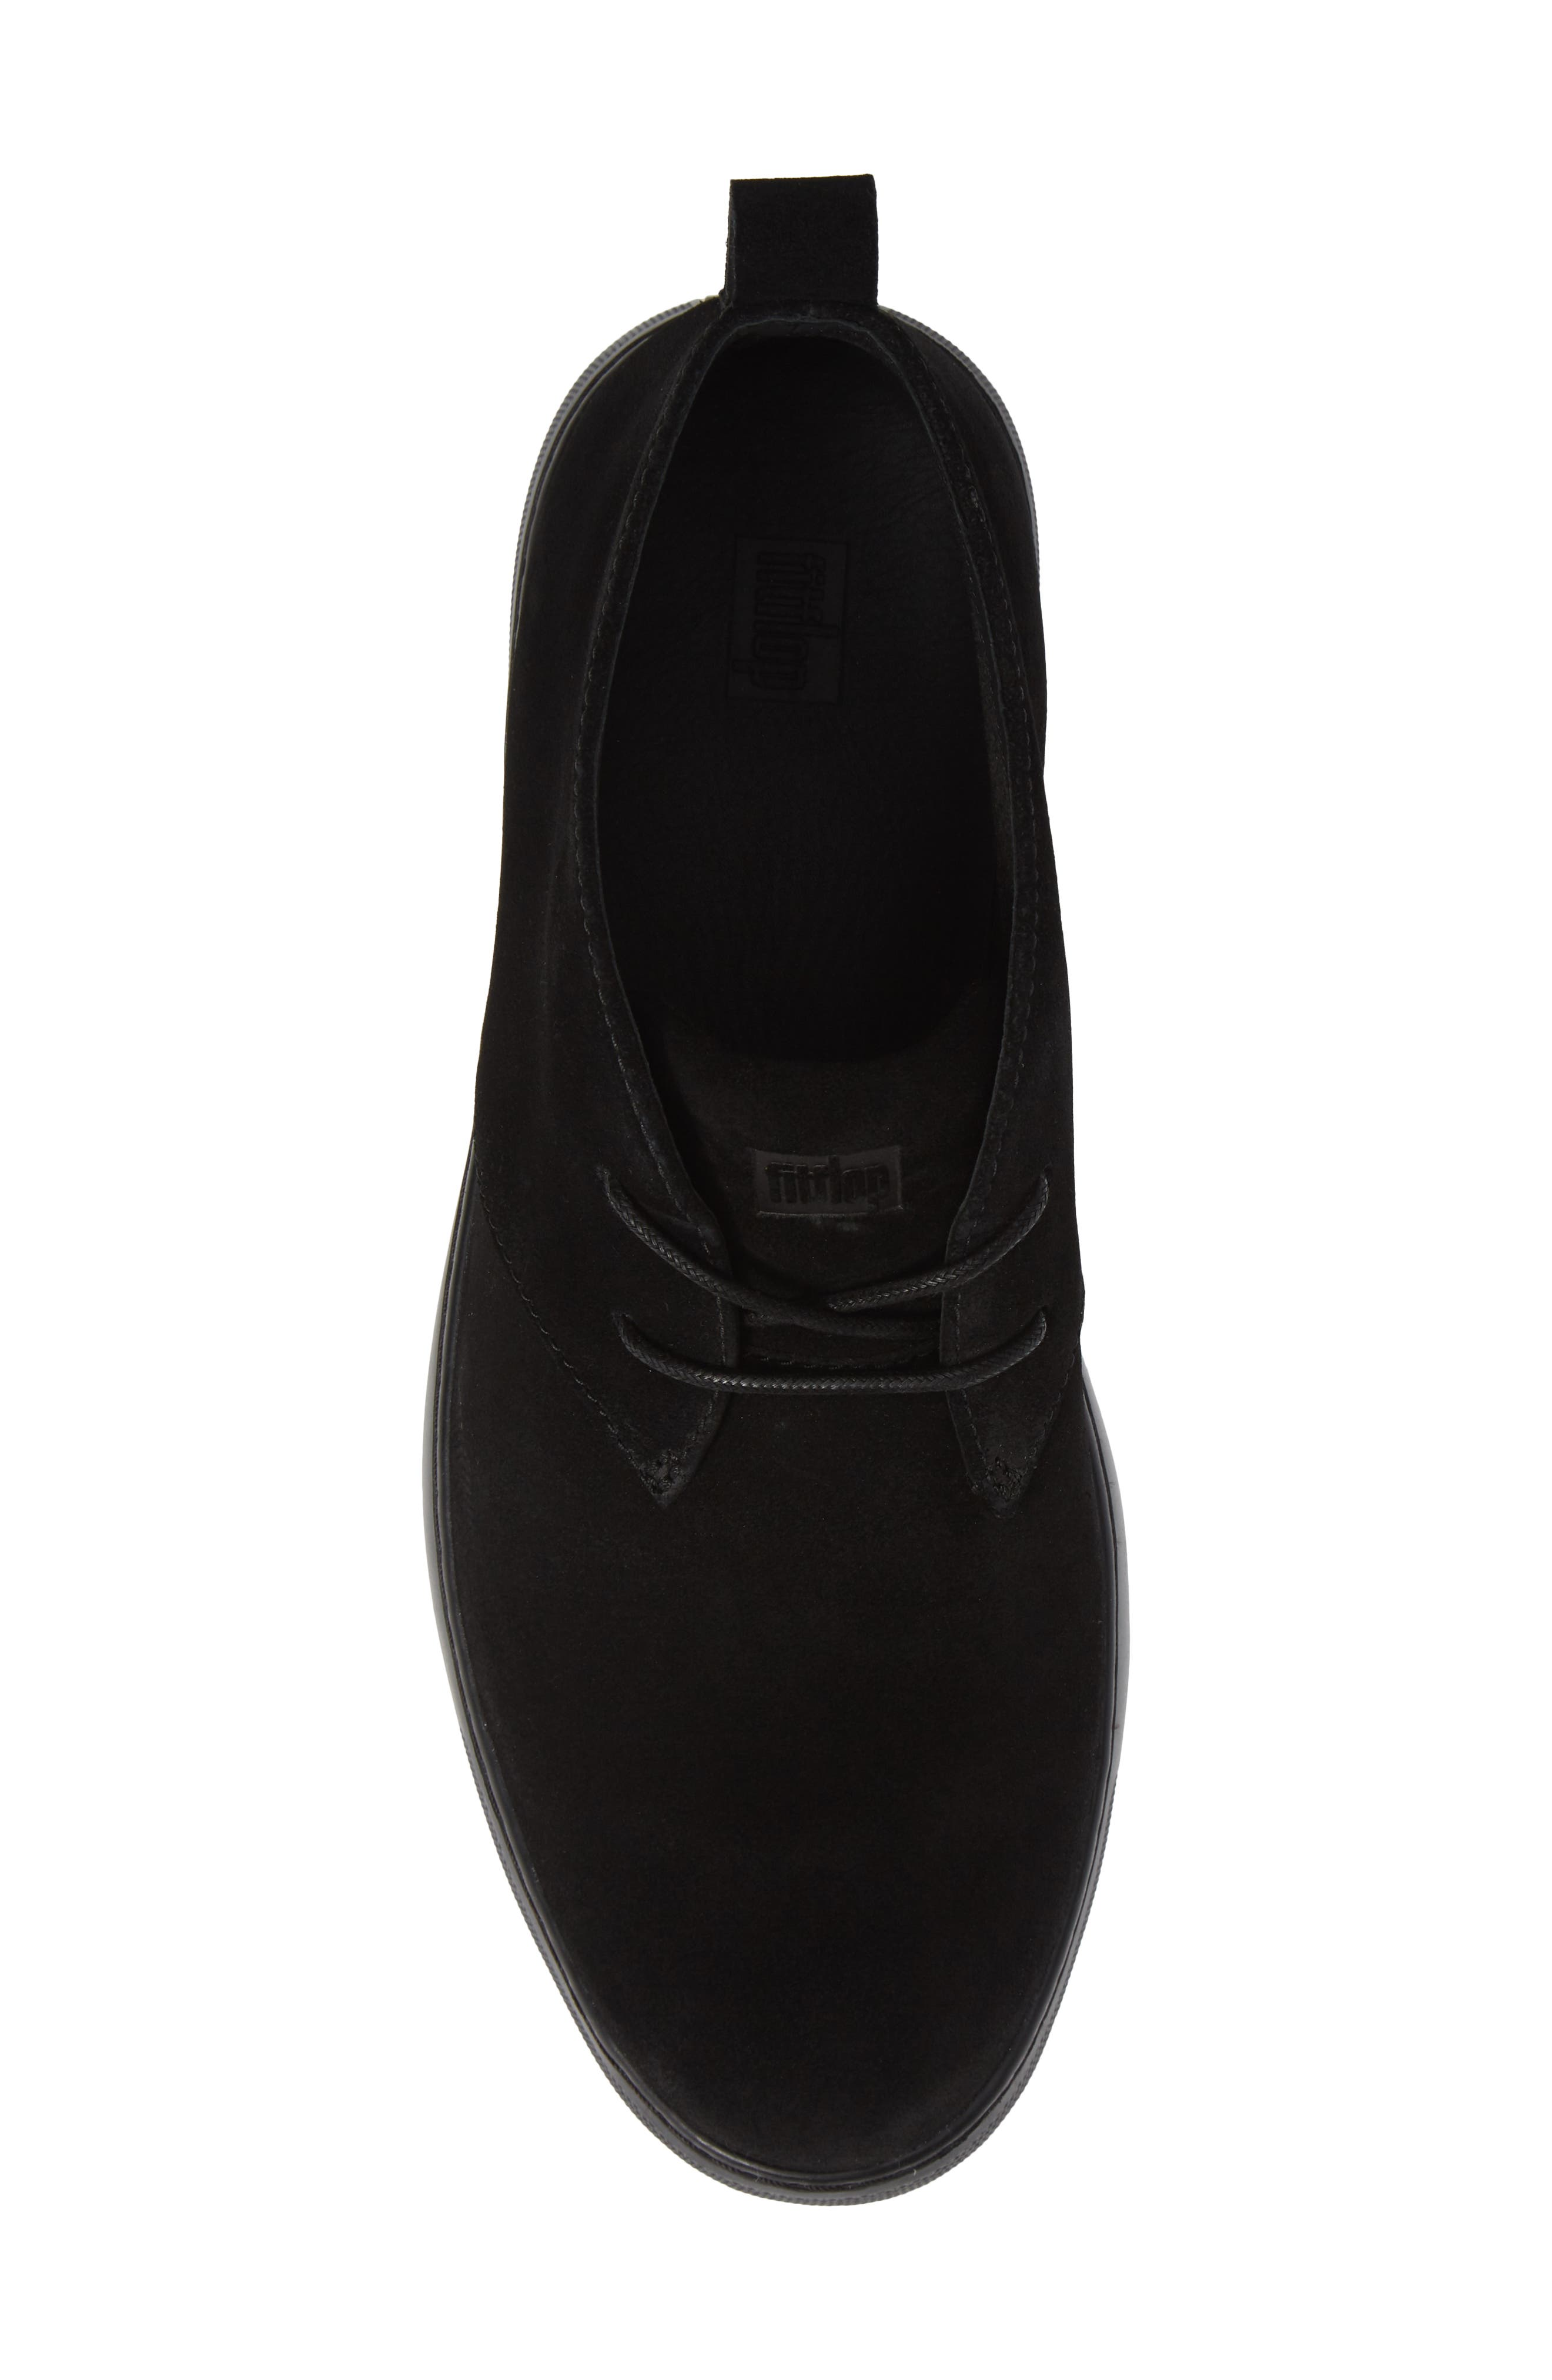 Zackery Chukka Boot,                             Alternate thumbnail 5, color,                             001